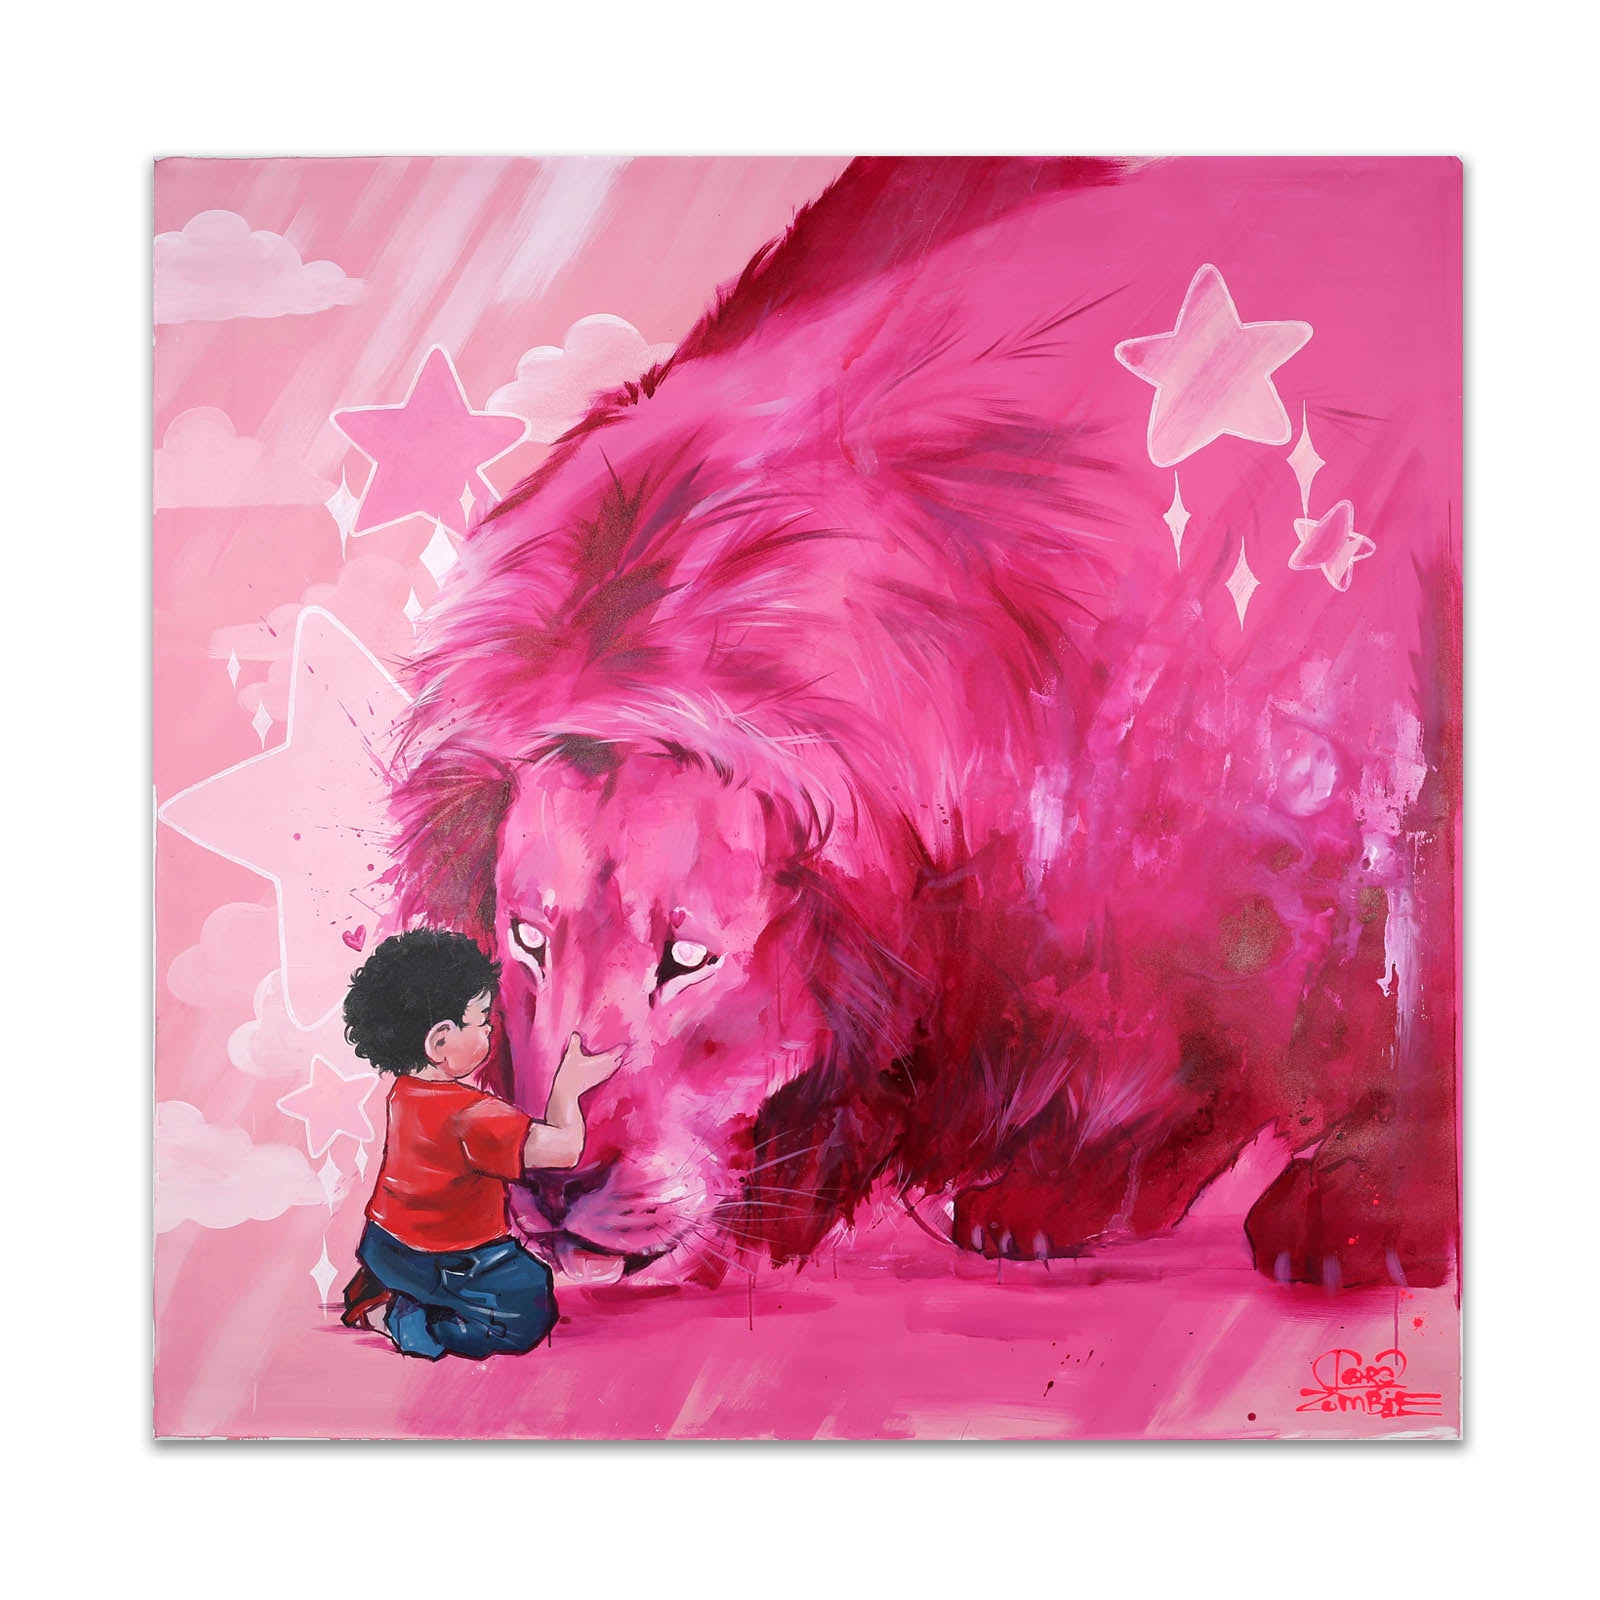 Steven meets Lion (Oversize Canvas)